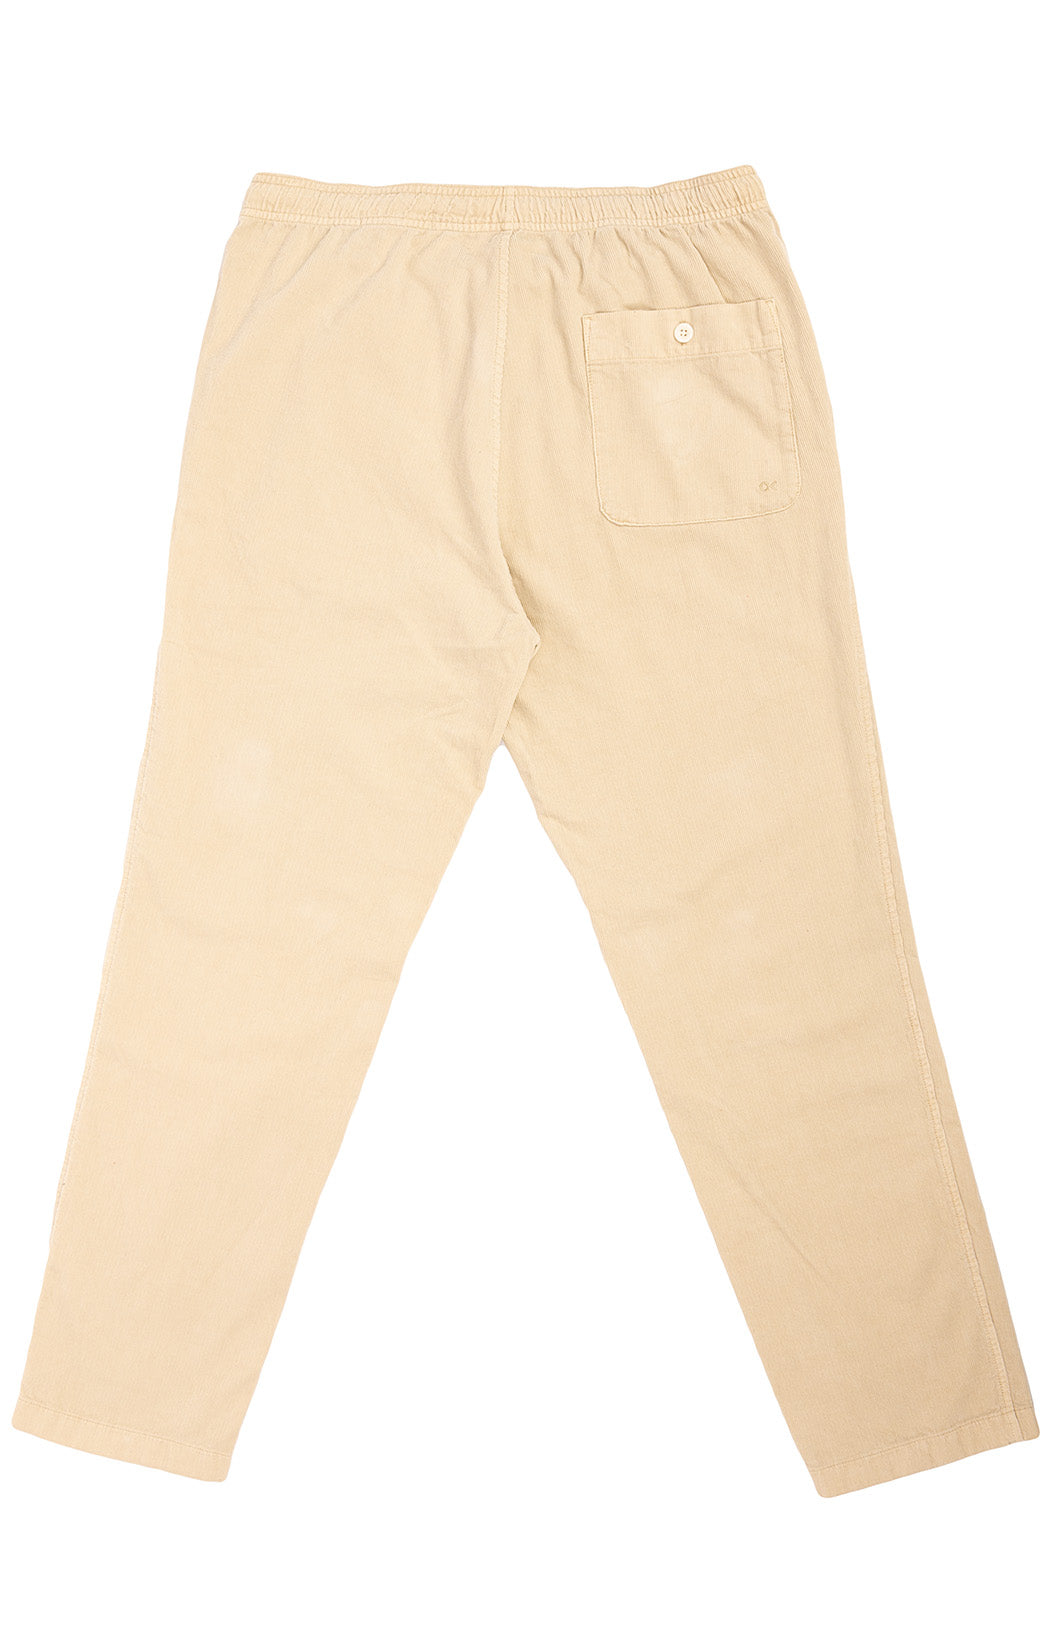 Beige corduroy elastic drawstring pants with side pockets and back pocket